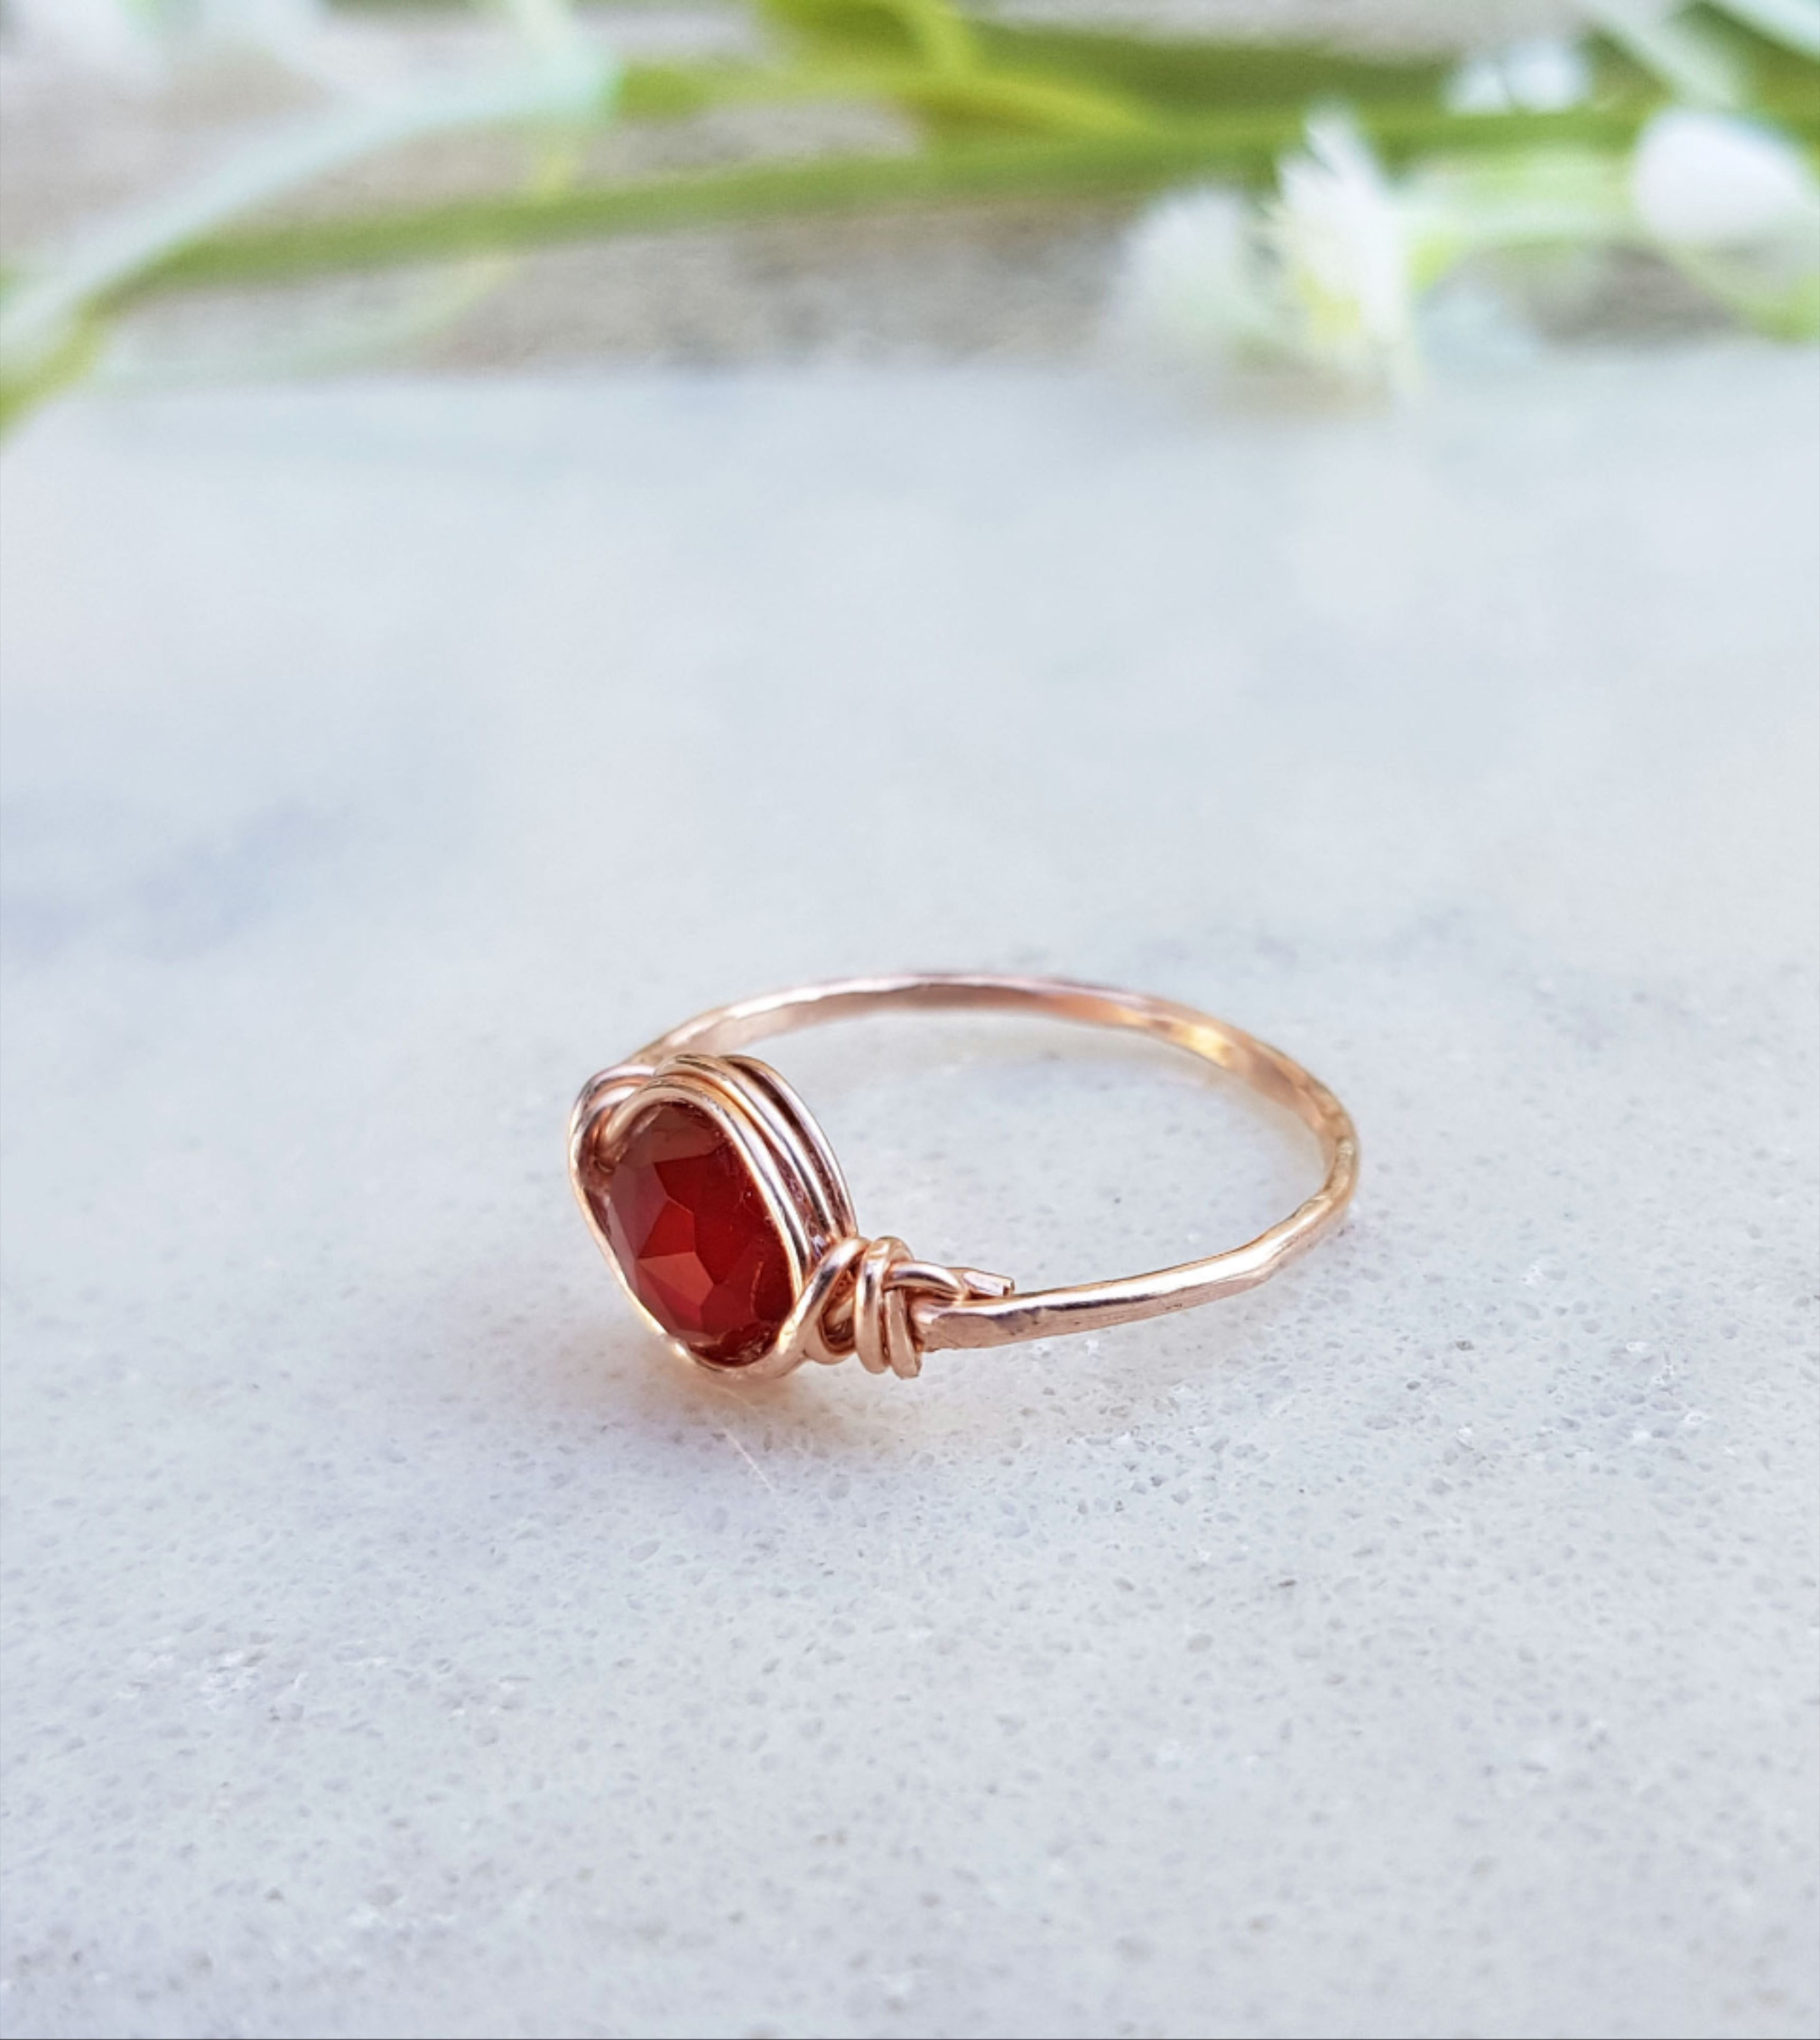 ring of the day stackable ring 925 sterling silver ring unique ring Natural garnet ring boho ring gift for her valentine day gift.